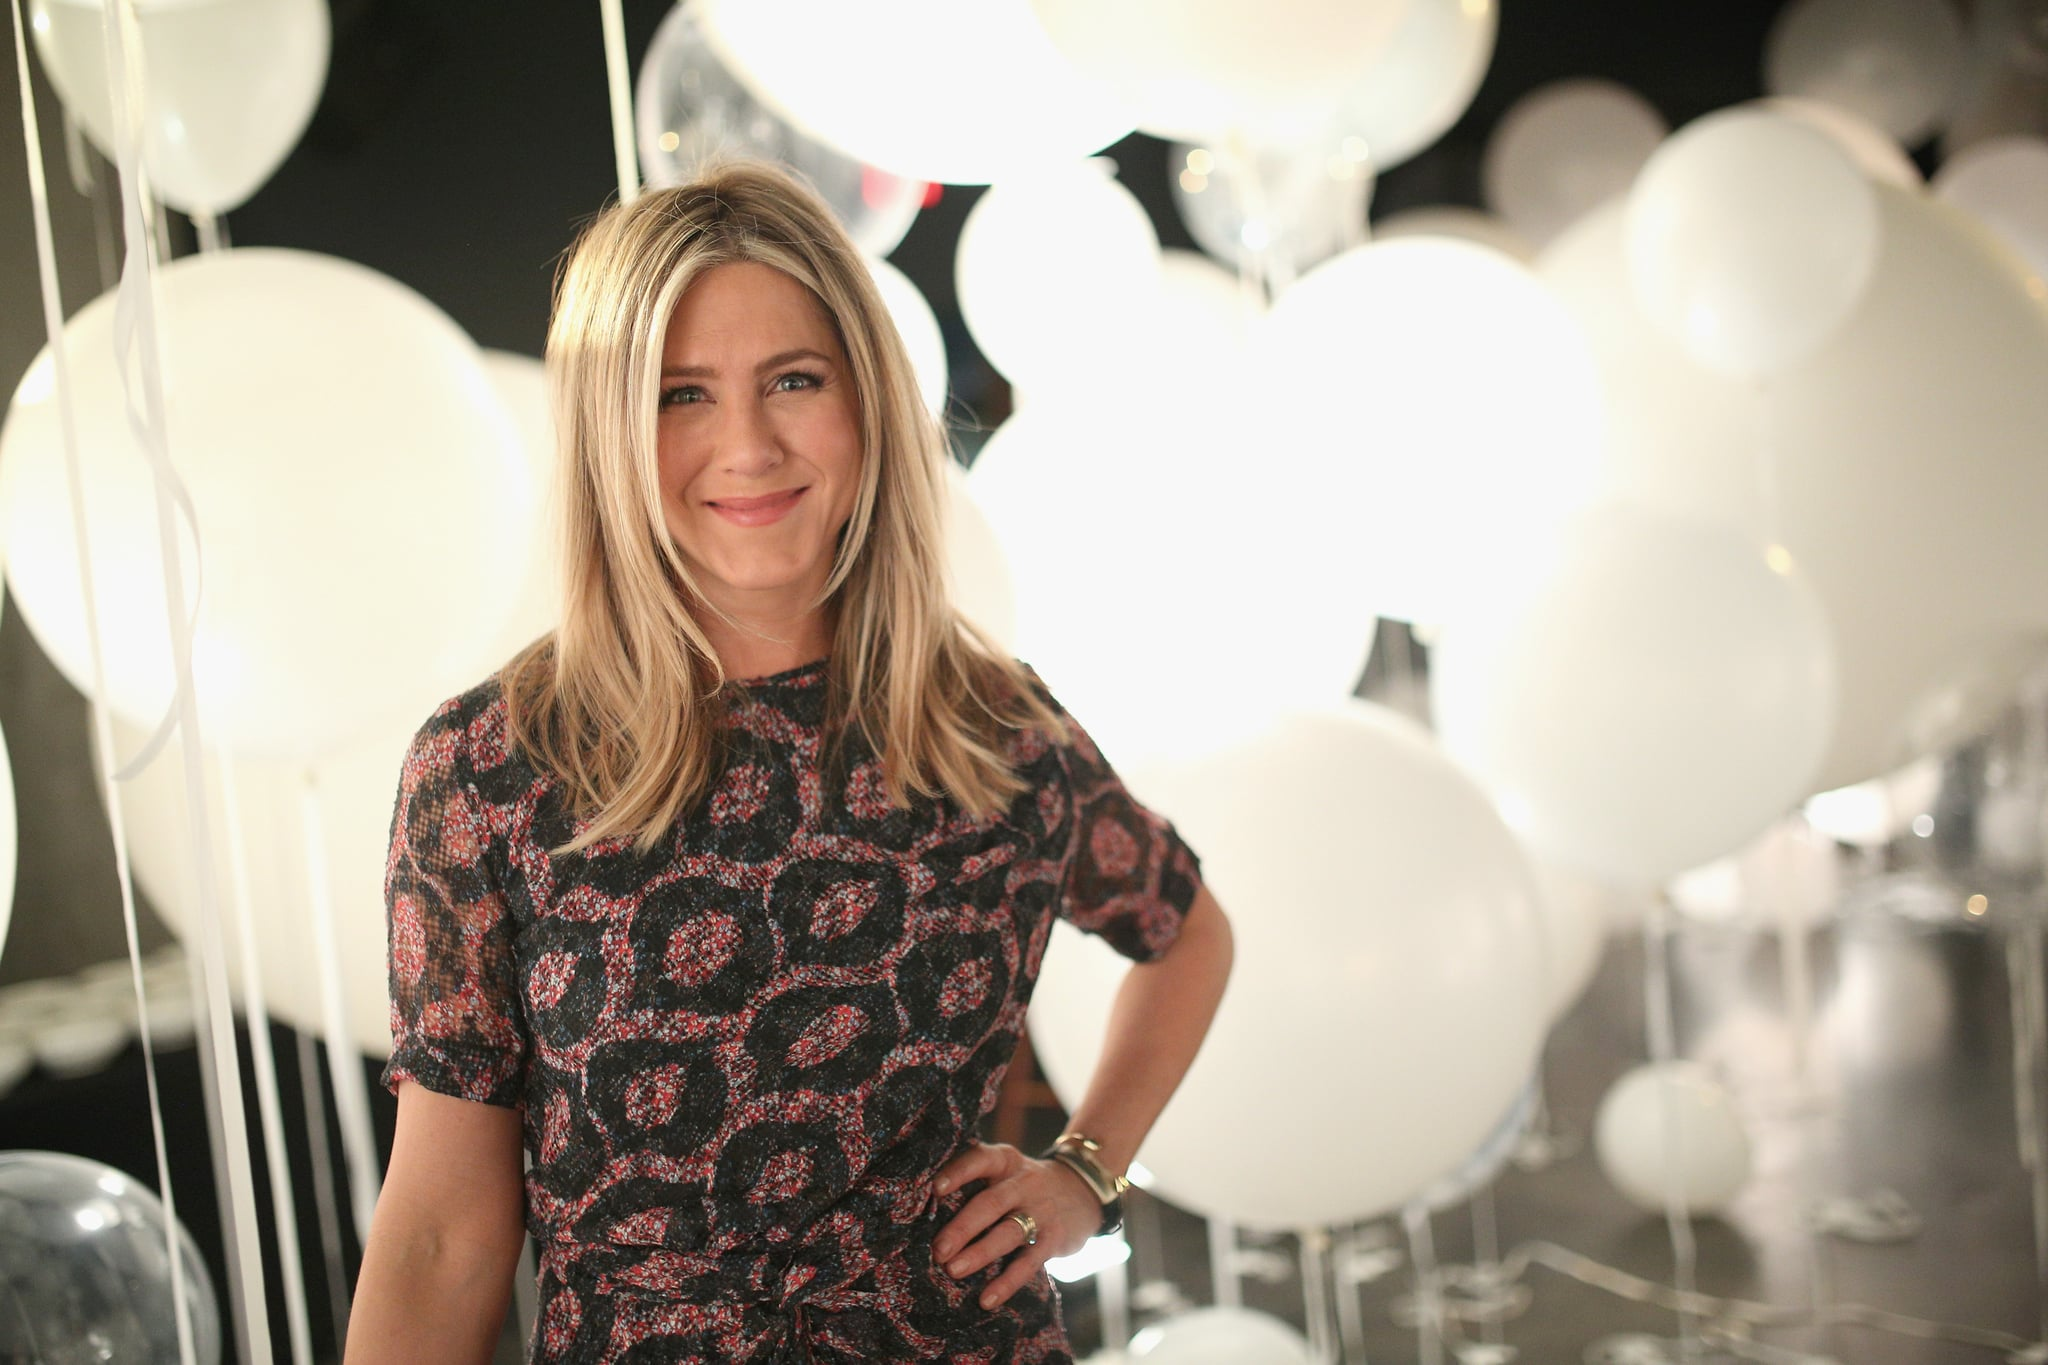 HOLLYWOOD, CA - FEBRUARY 23:  Actress Jennifer Aniston attends smartwater sparkling celebrates Jennifer Aniston and St Jude's Children's Hospital at W Hollywood on February 23, 2016 in Hollywood, California.  (Photo by Mike Windle/Getty Images for smartwater)